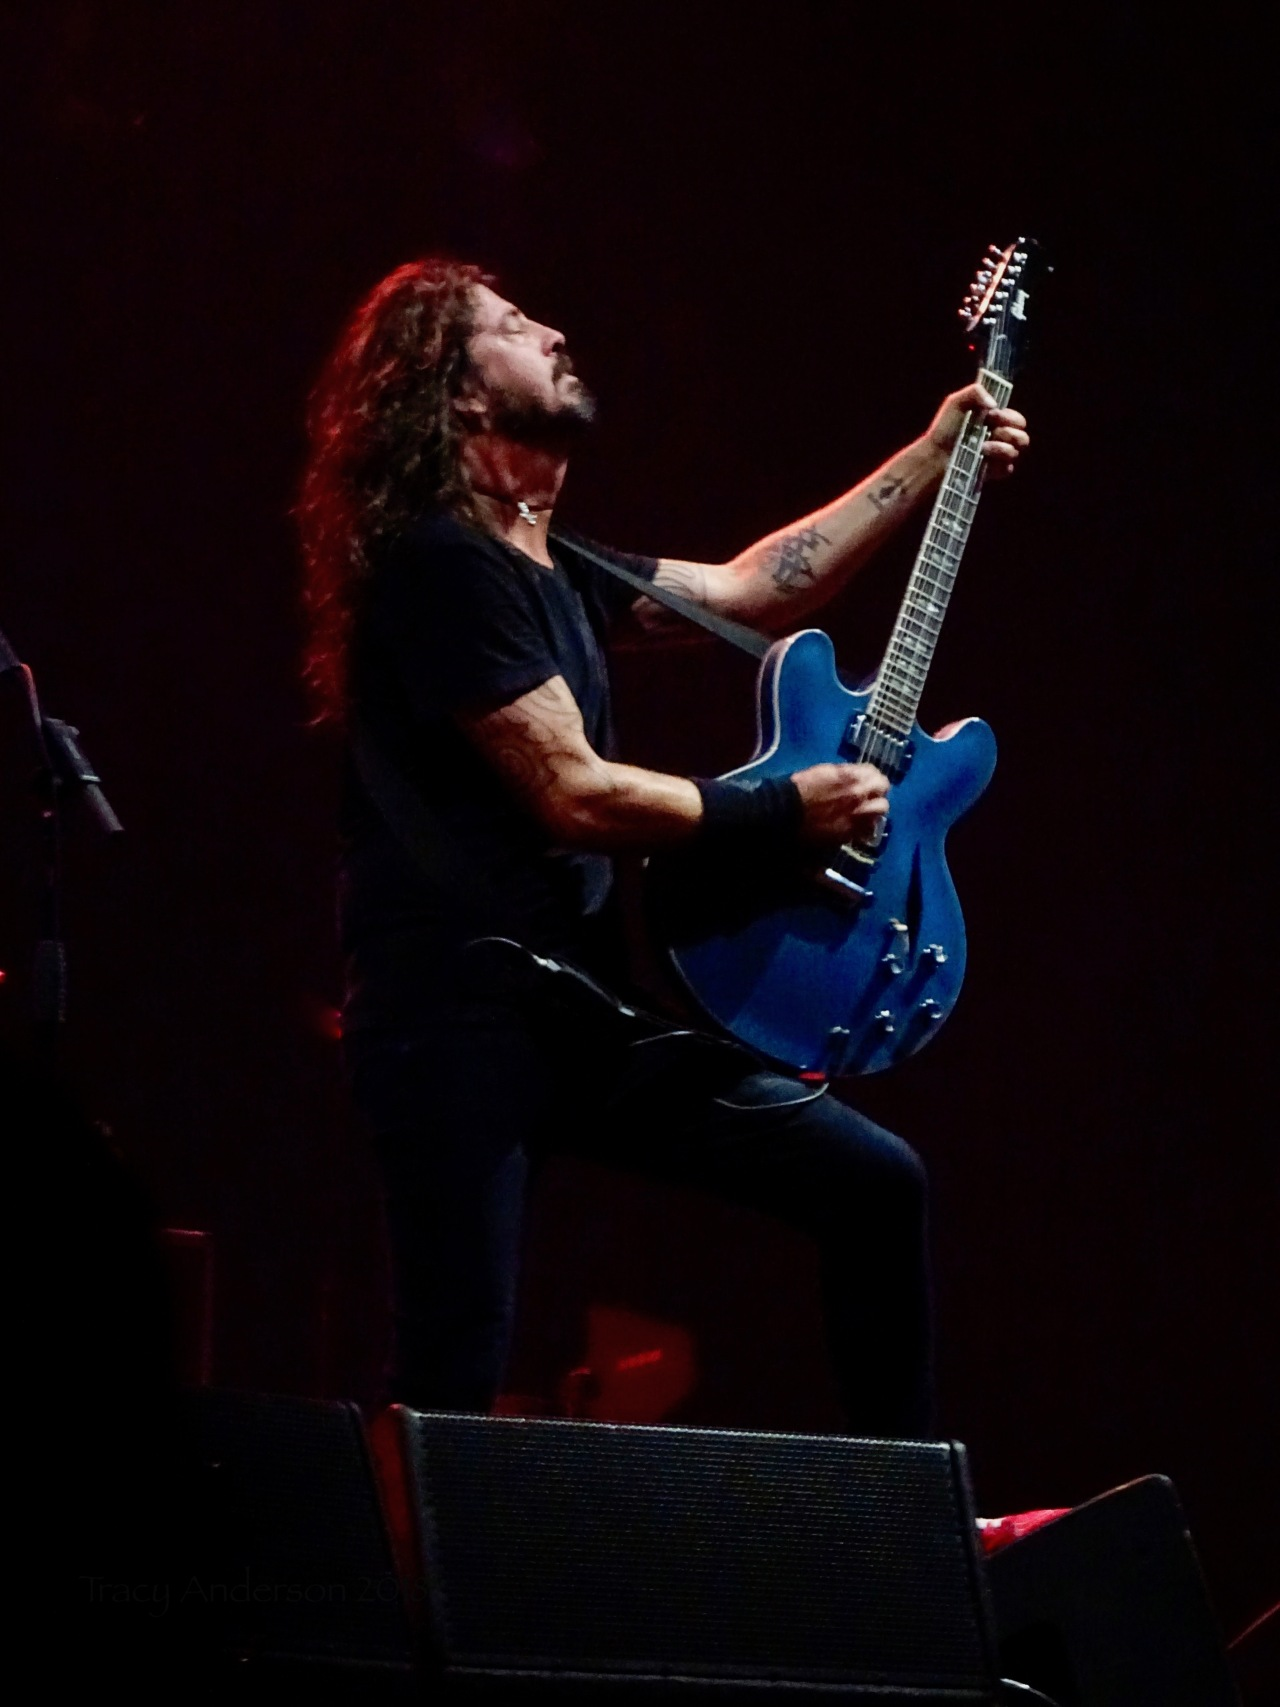 Dave Grohl Foo Fighters Concrete and Gold Tour Guitar ProfileRogers Place Edmonton Oct 22 2018